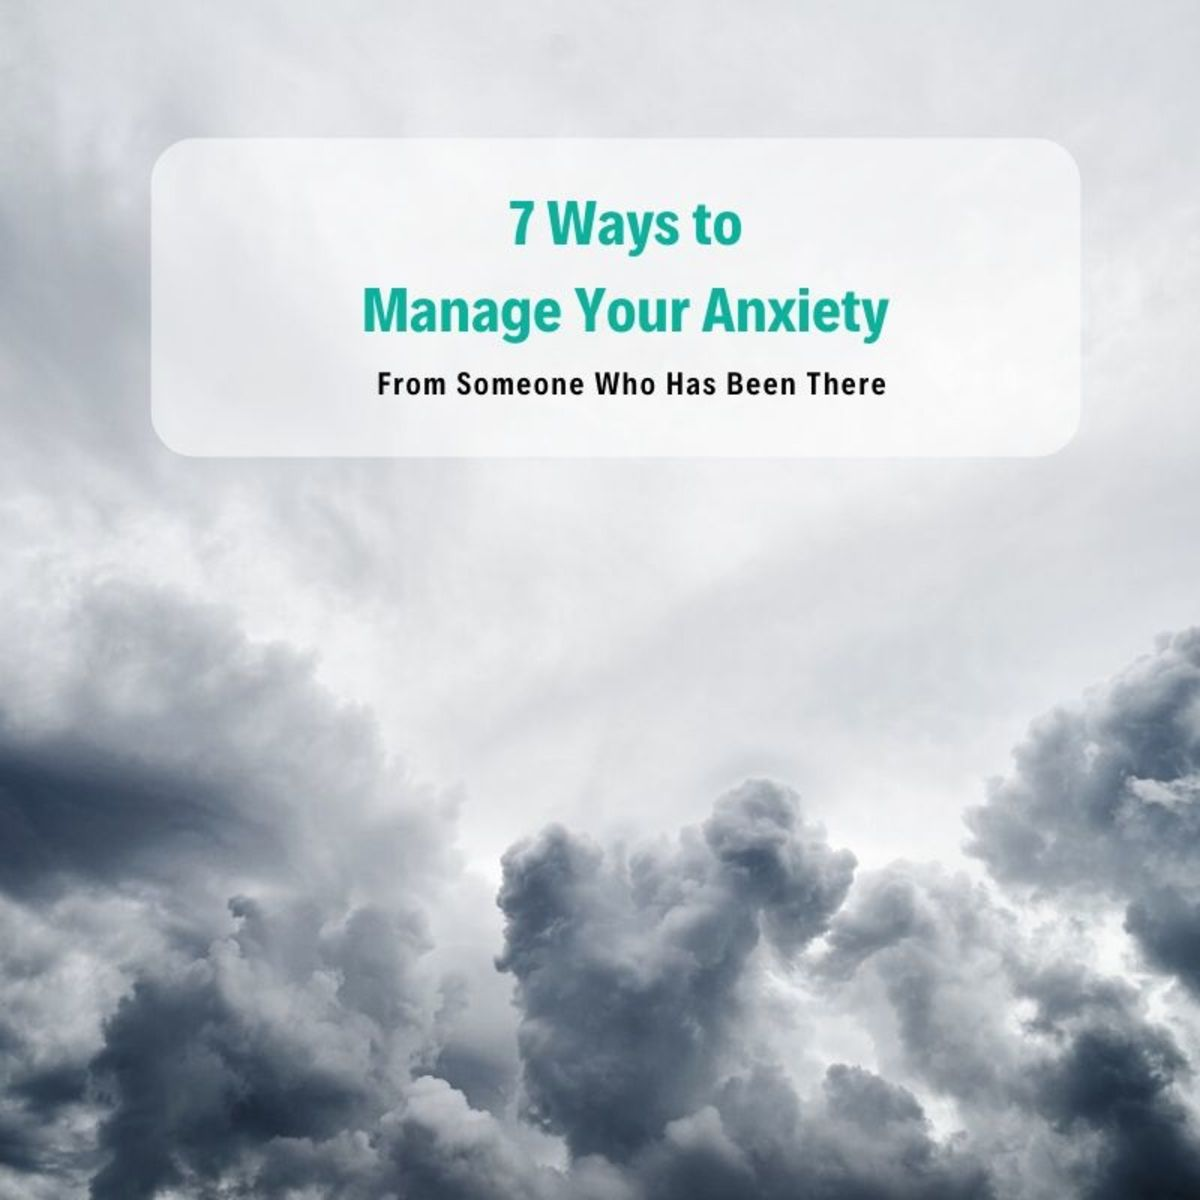 7 Ways to Deal With Anxiety from Someone Who Has Been There